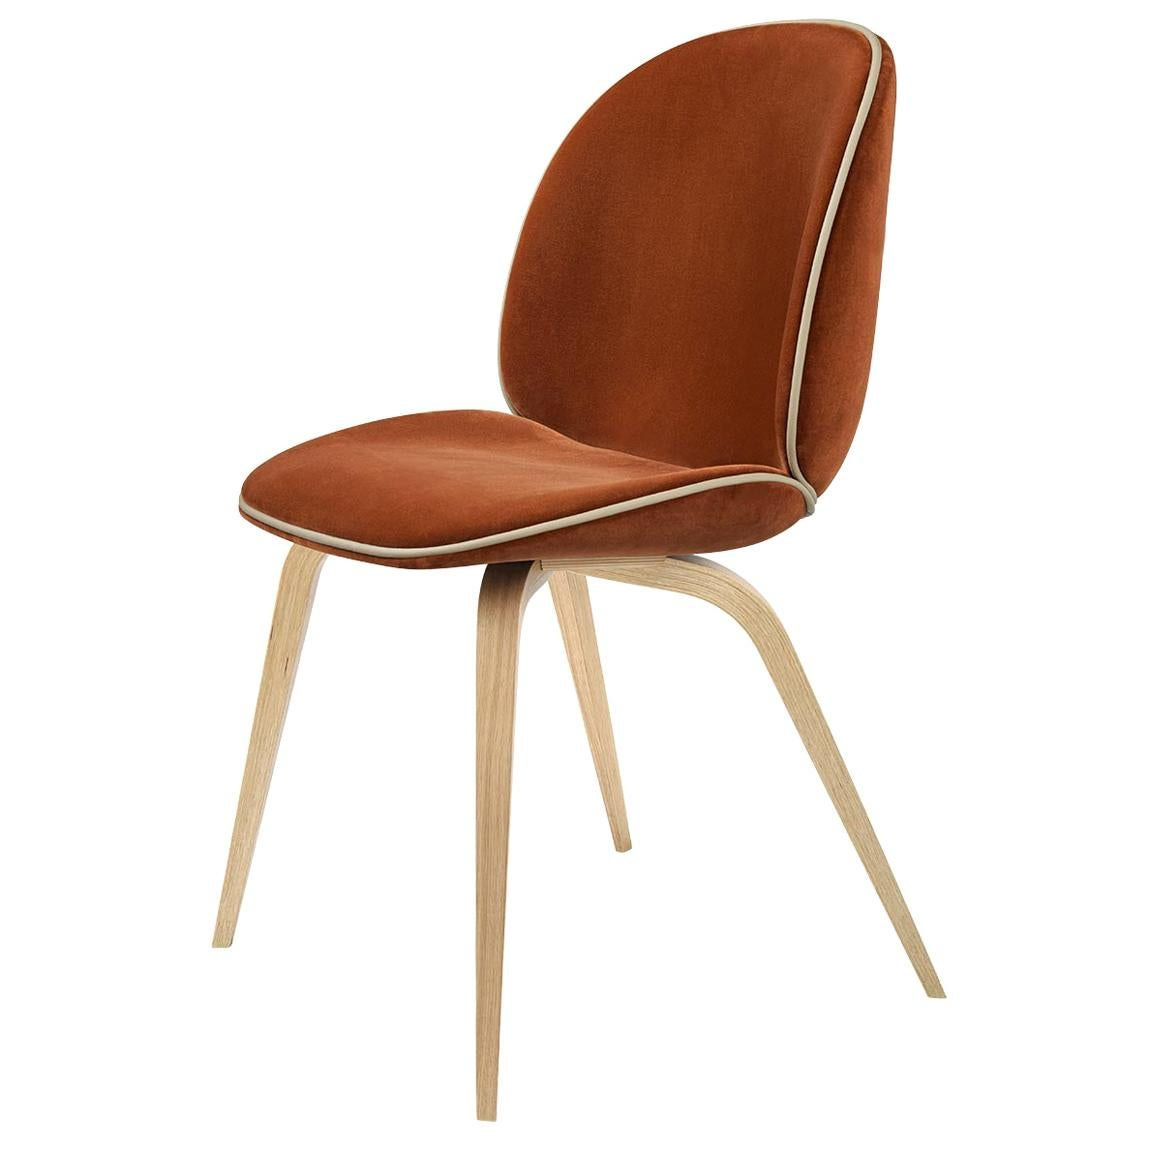 Beetle Dining Chair, Fully Upholstered, Natural Oak